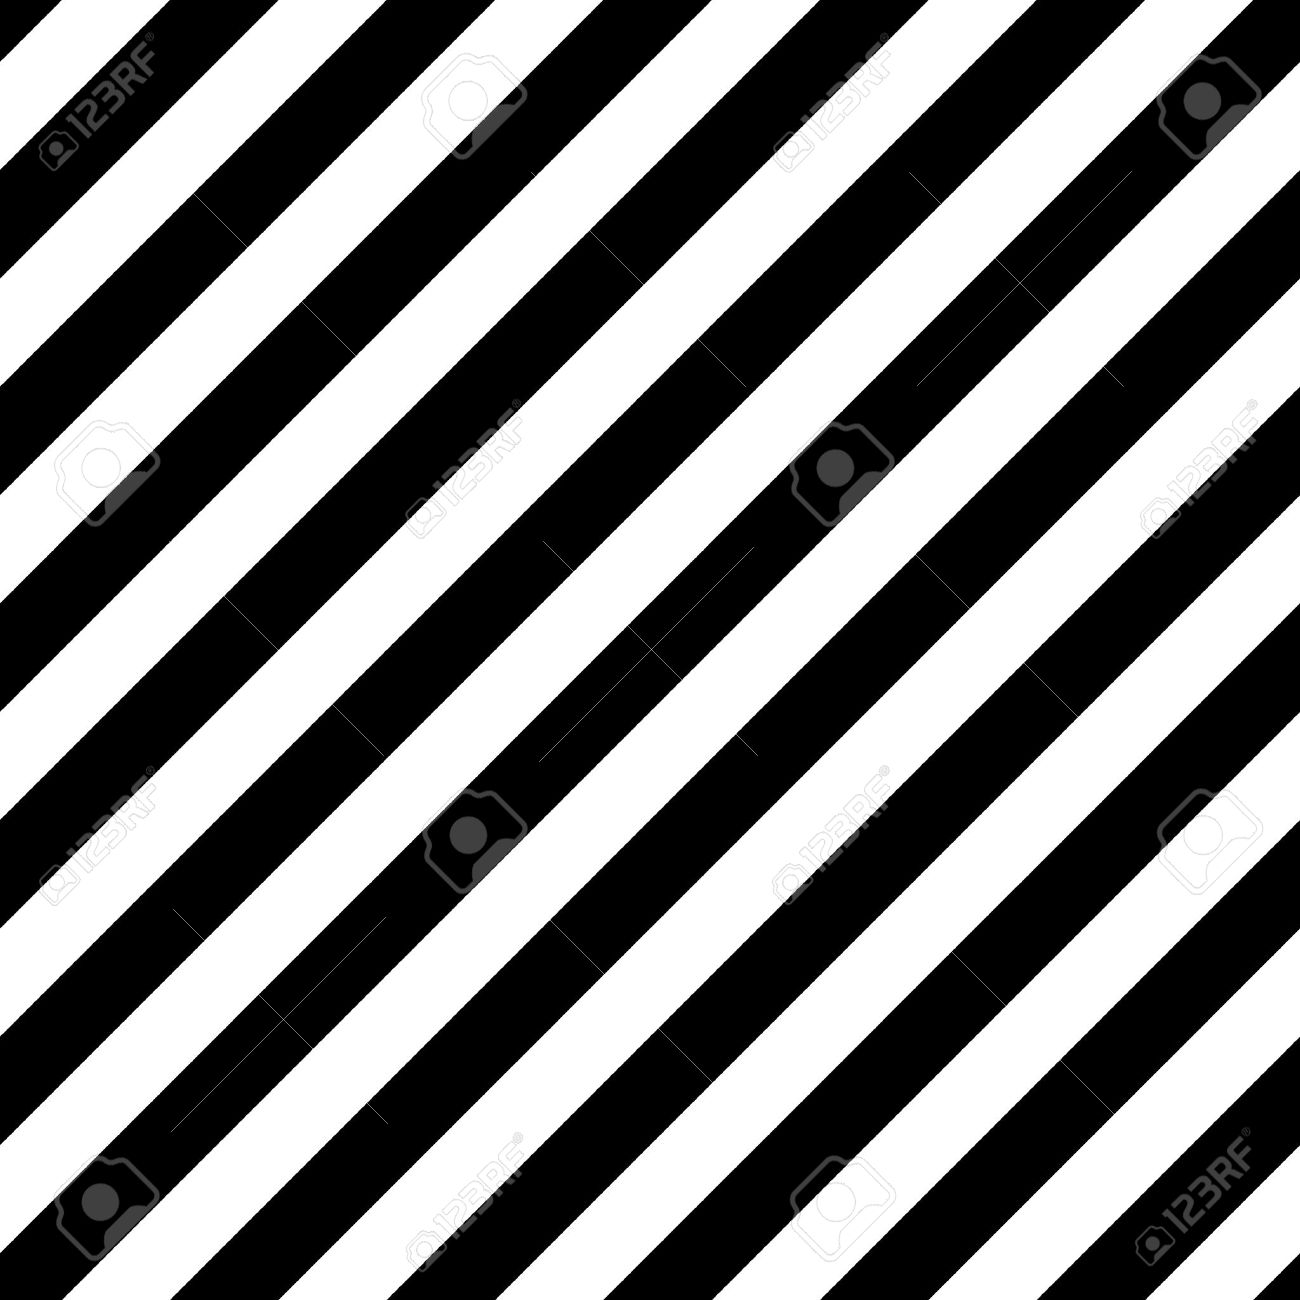 EPS Vector - Seamless geometric pattern, simple vector black and white  stripe. Stock Clipart Illustration gg72350450 - GoGraph